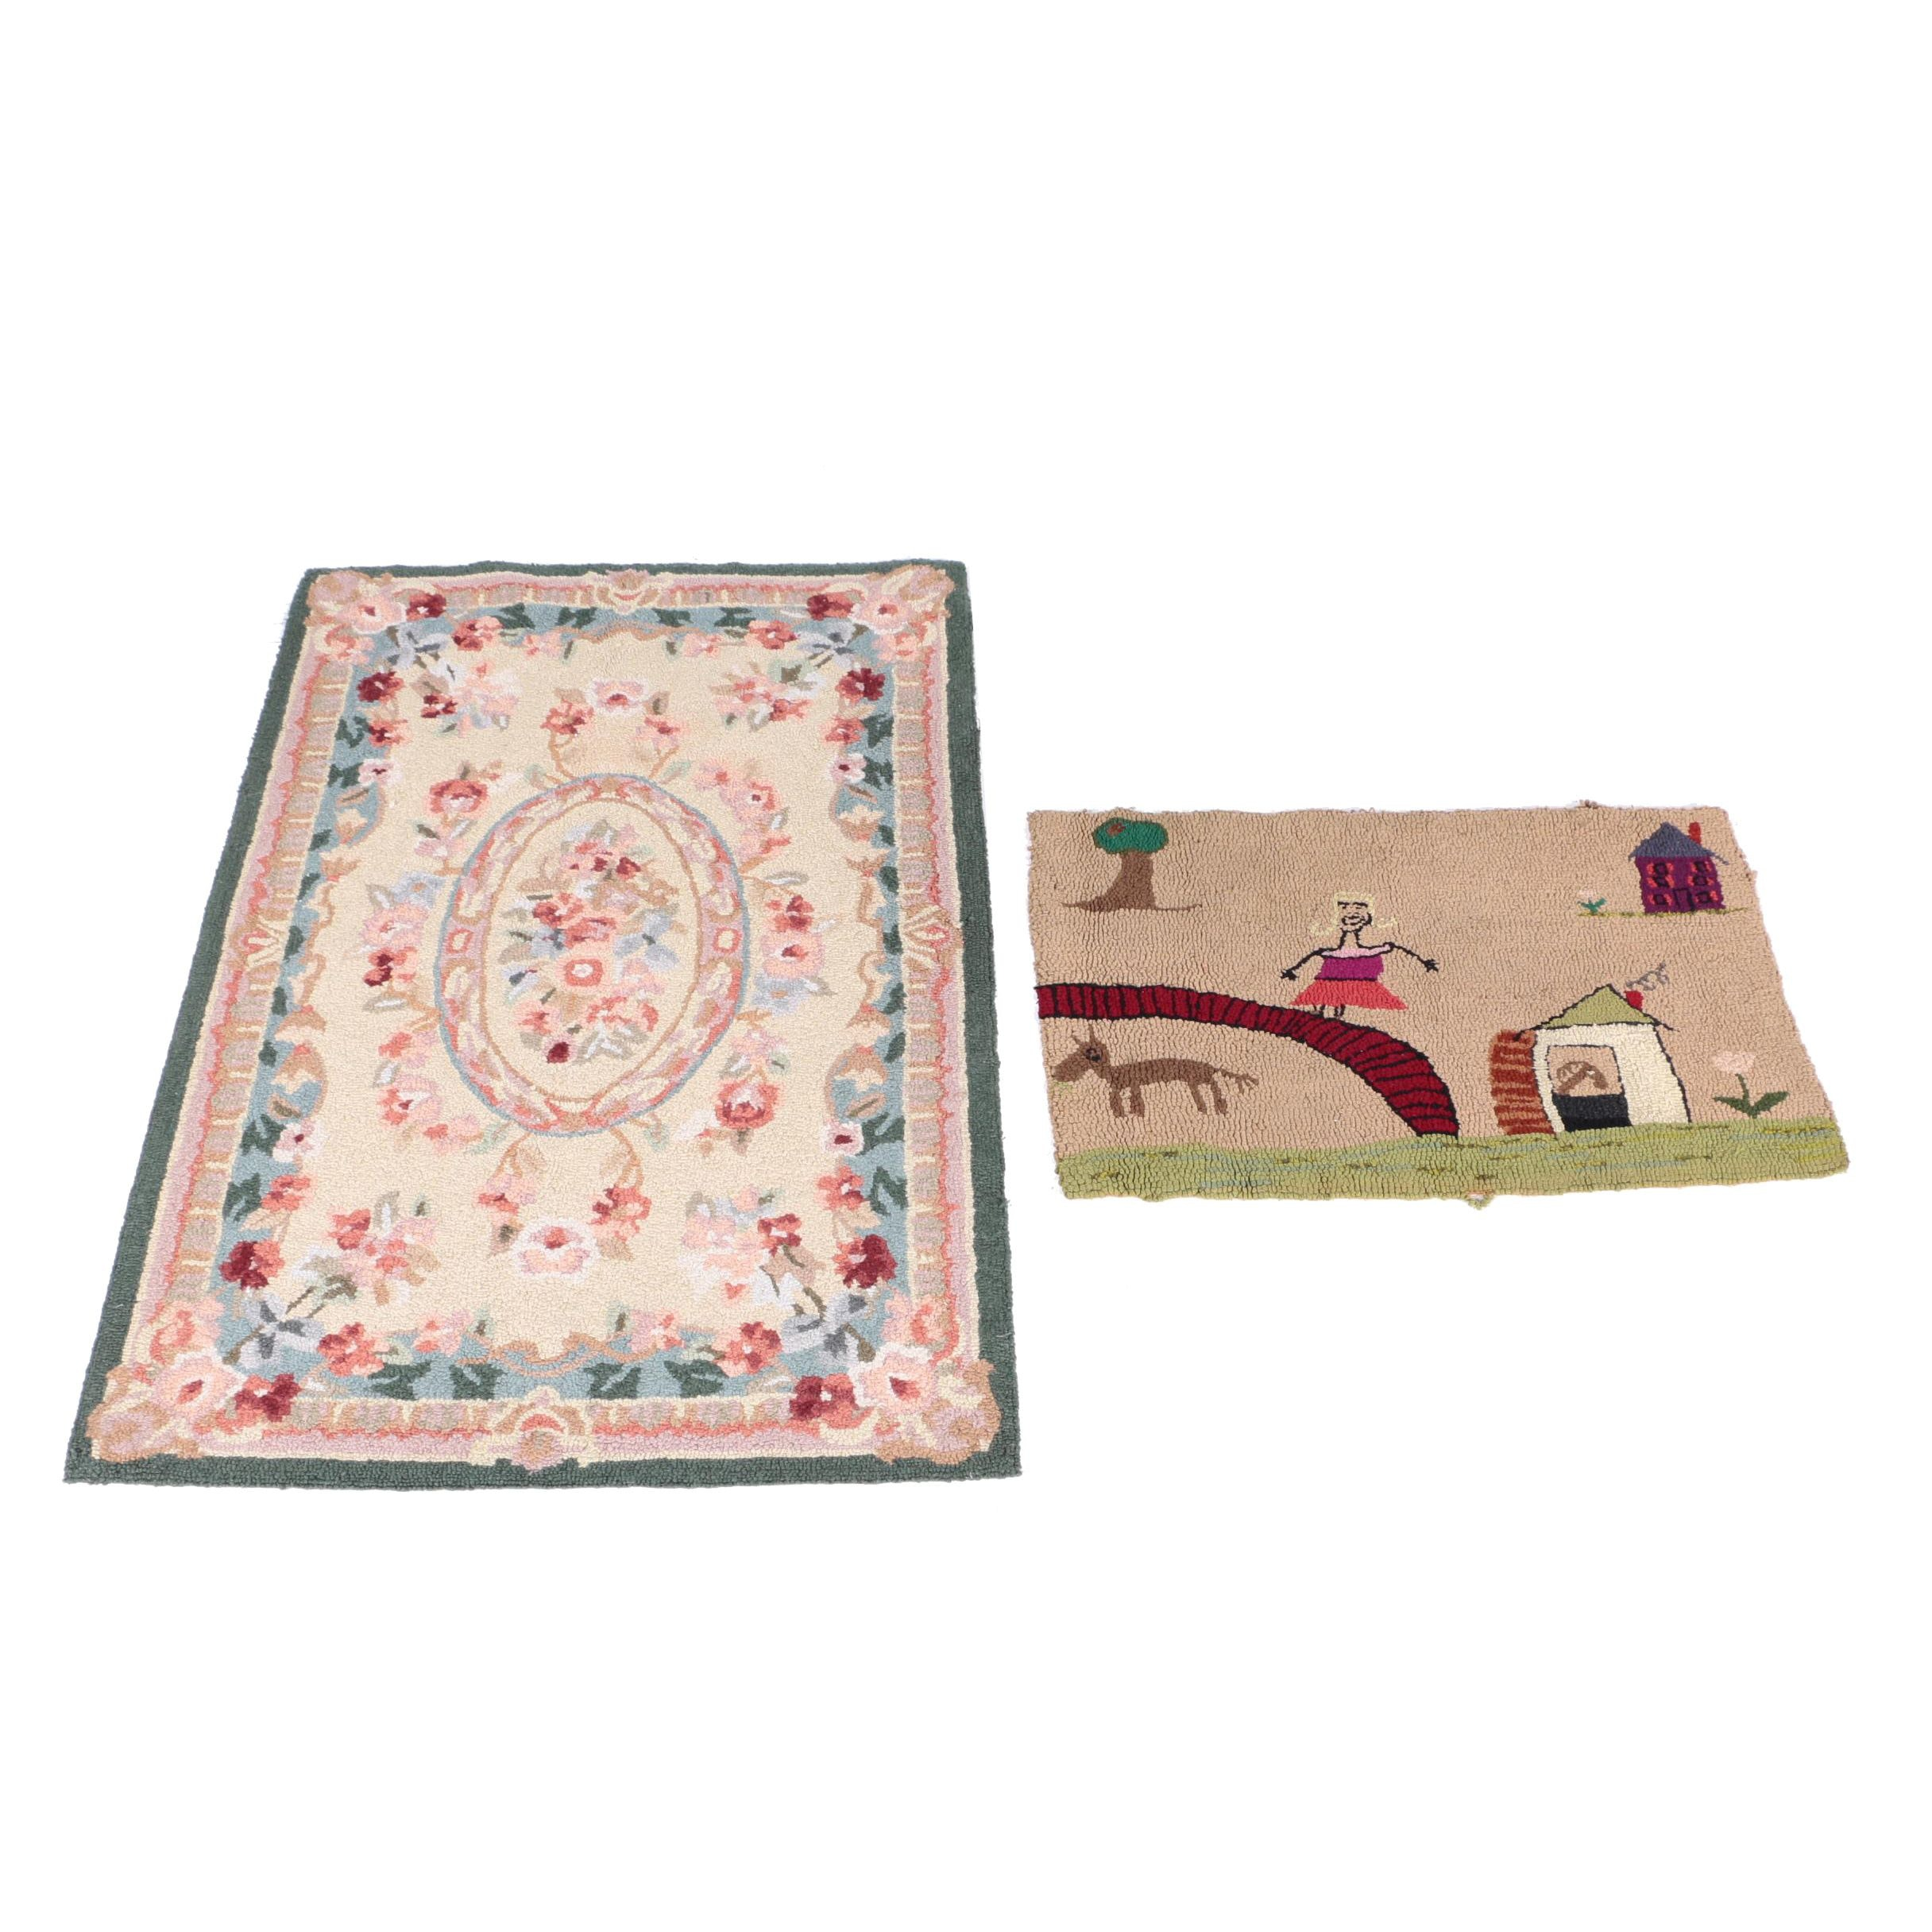 Hand-Hooked Floral and Pictorial Accent Rugs